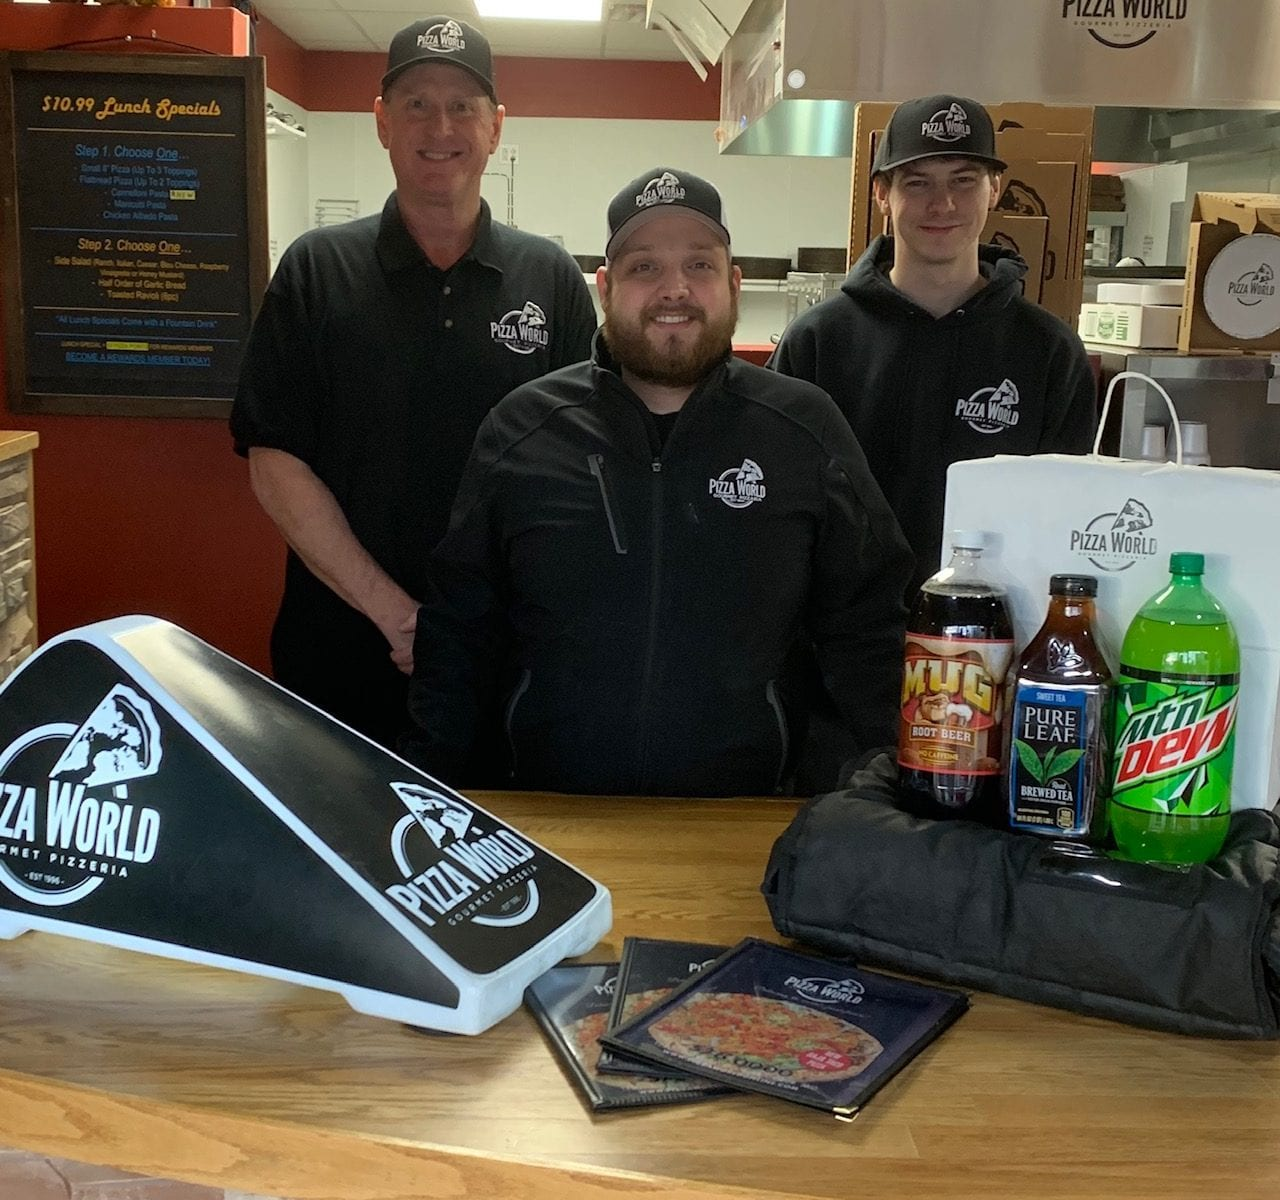 Pizza World in Creve Coeur Recognizes Employees